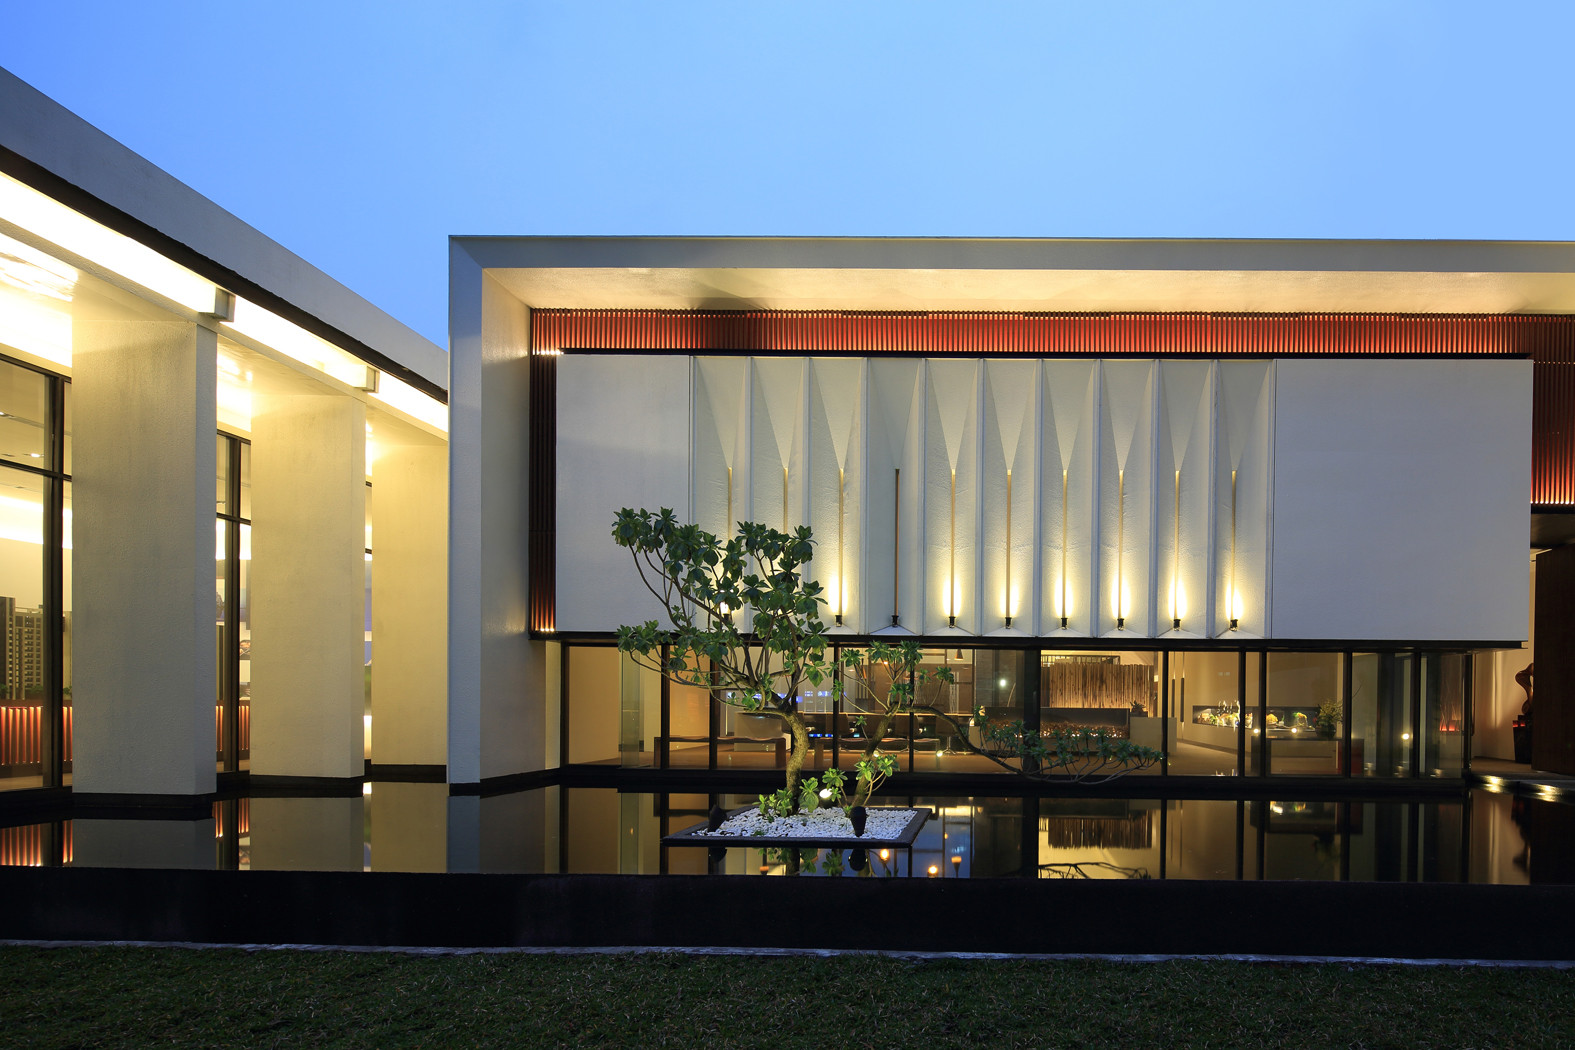 exquisite minimalist arcadian architecture design shining group - Minimalist Architecture Houses